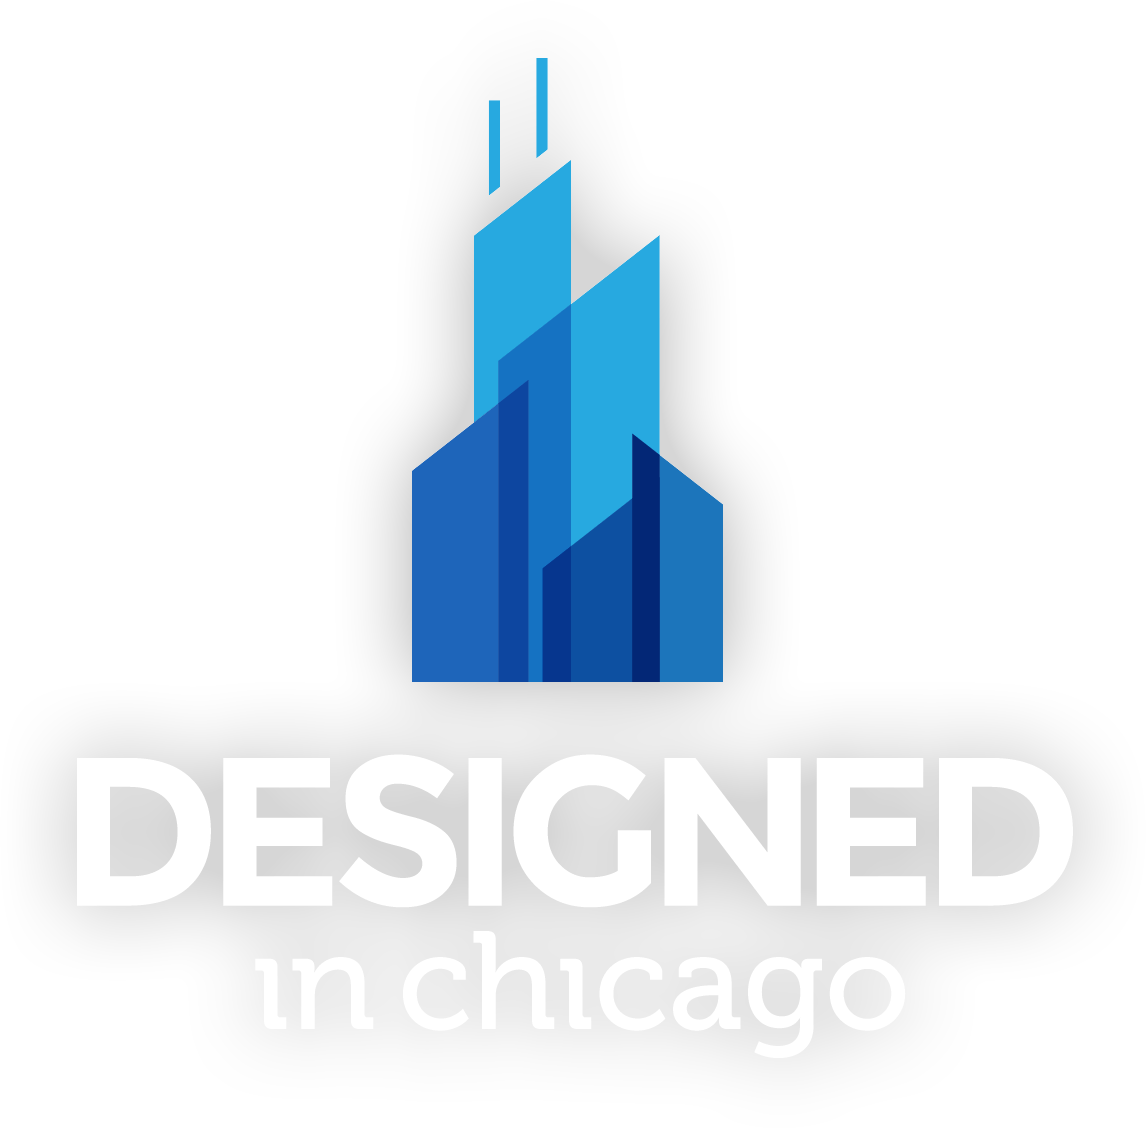 Designed in Chicago